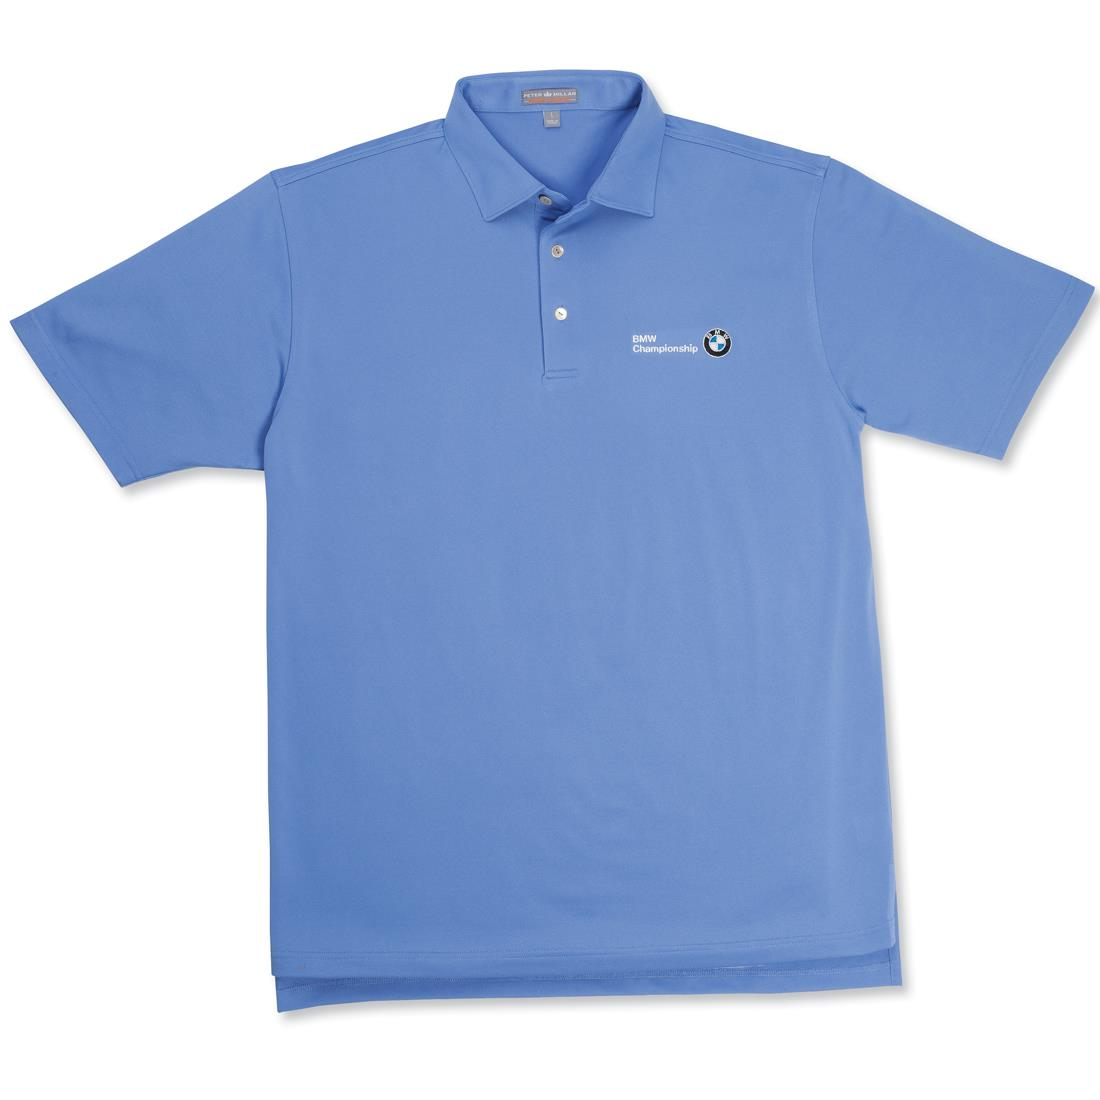 BMW Men's Peter Millar Solid Summer Comfort Stretch Shirt